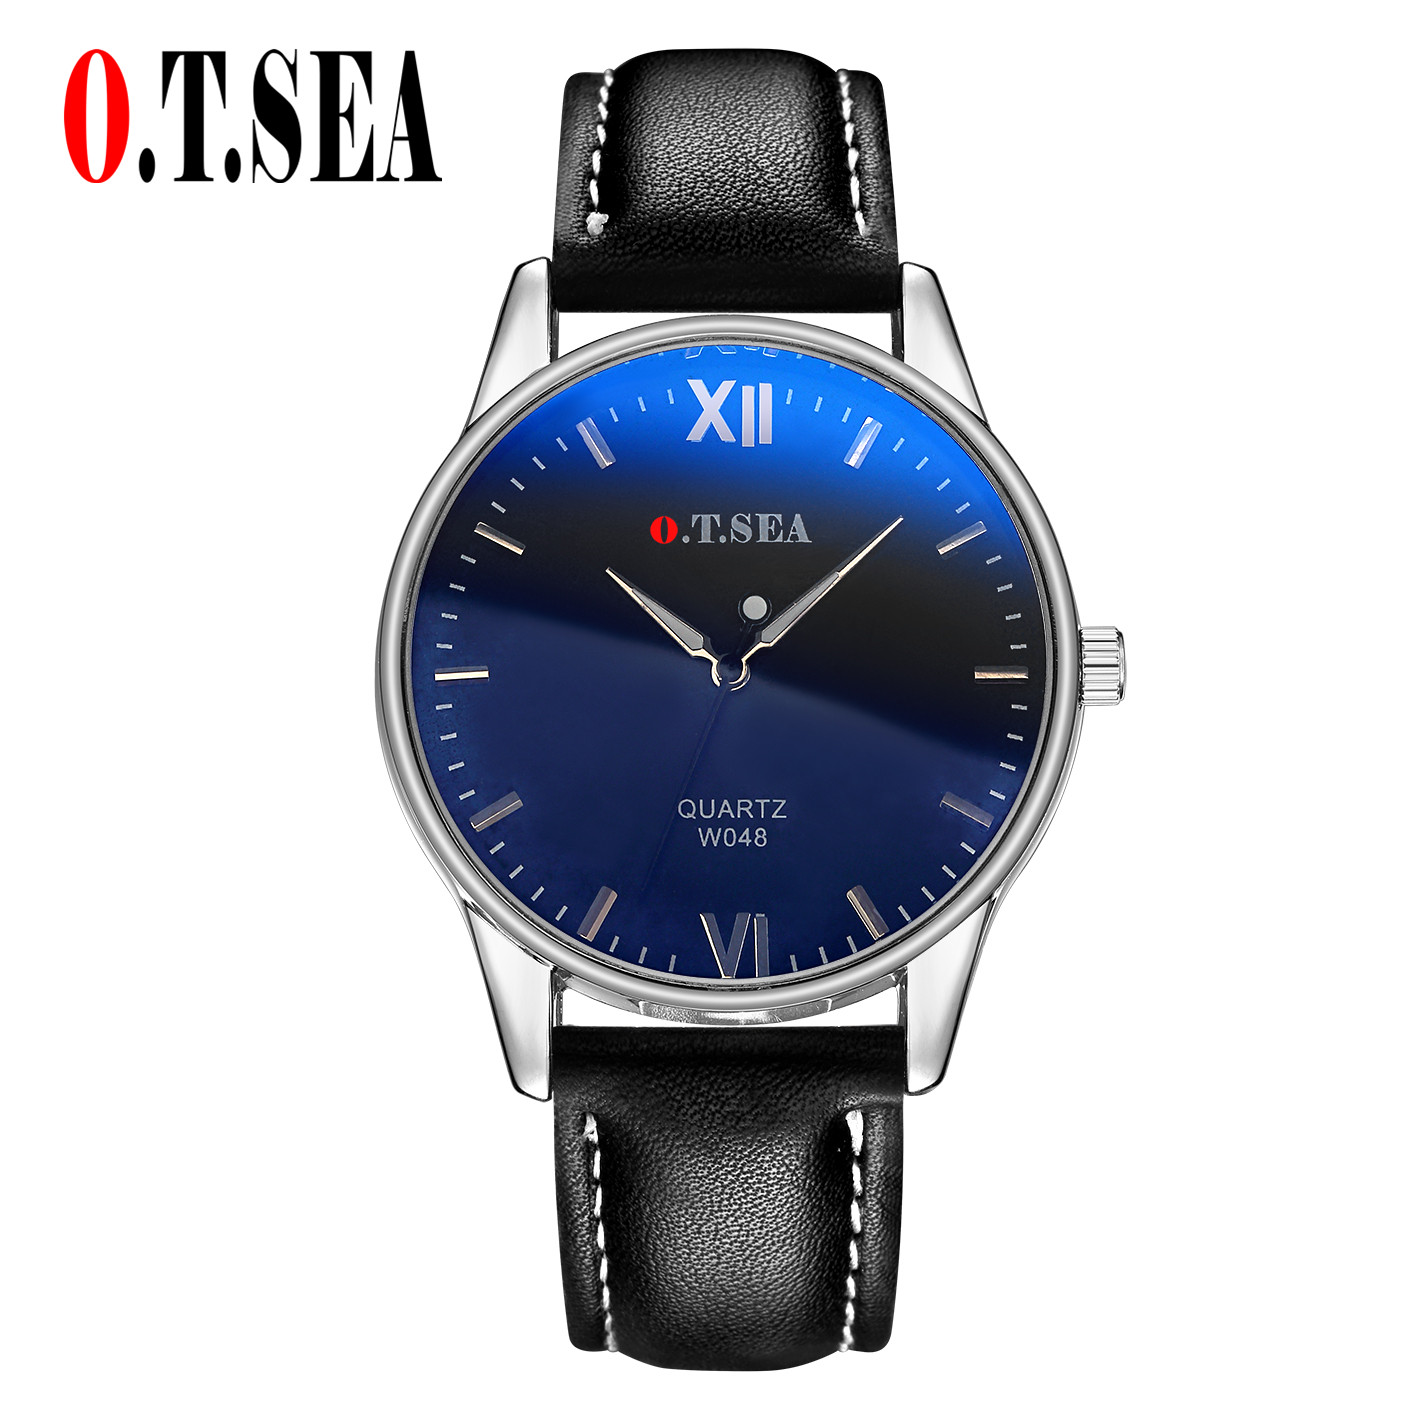 Luxury O.T.SEA Brand Blue Ray Glass Faux Leather Watches Men Military Sports Quartz Wrist Watch Relogio Masculino W048 fashion o t sea brand faux leather blue ray glass watch men military quartz wrist watches relogio masculino w042